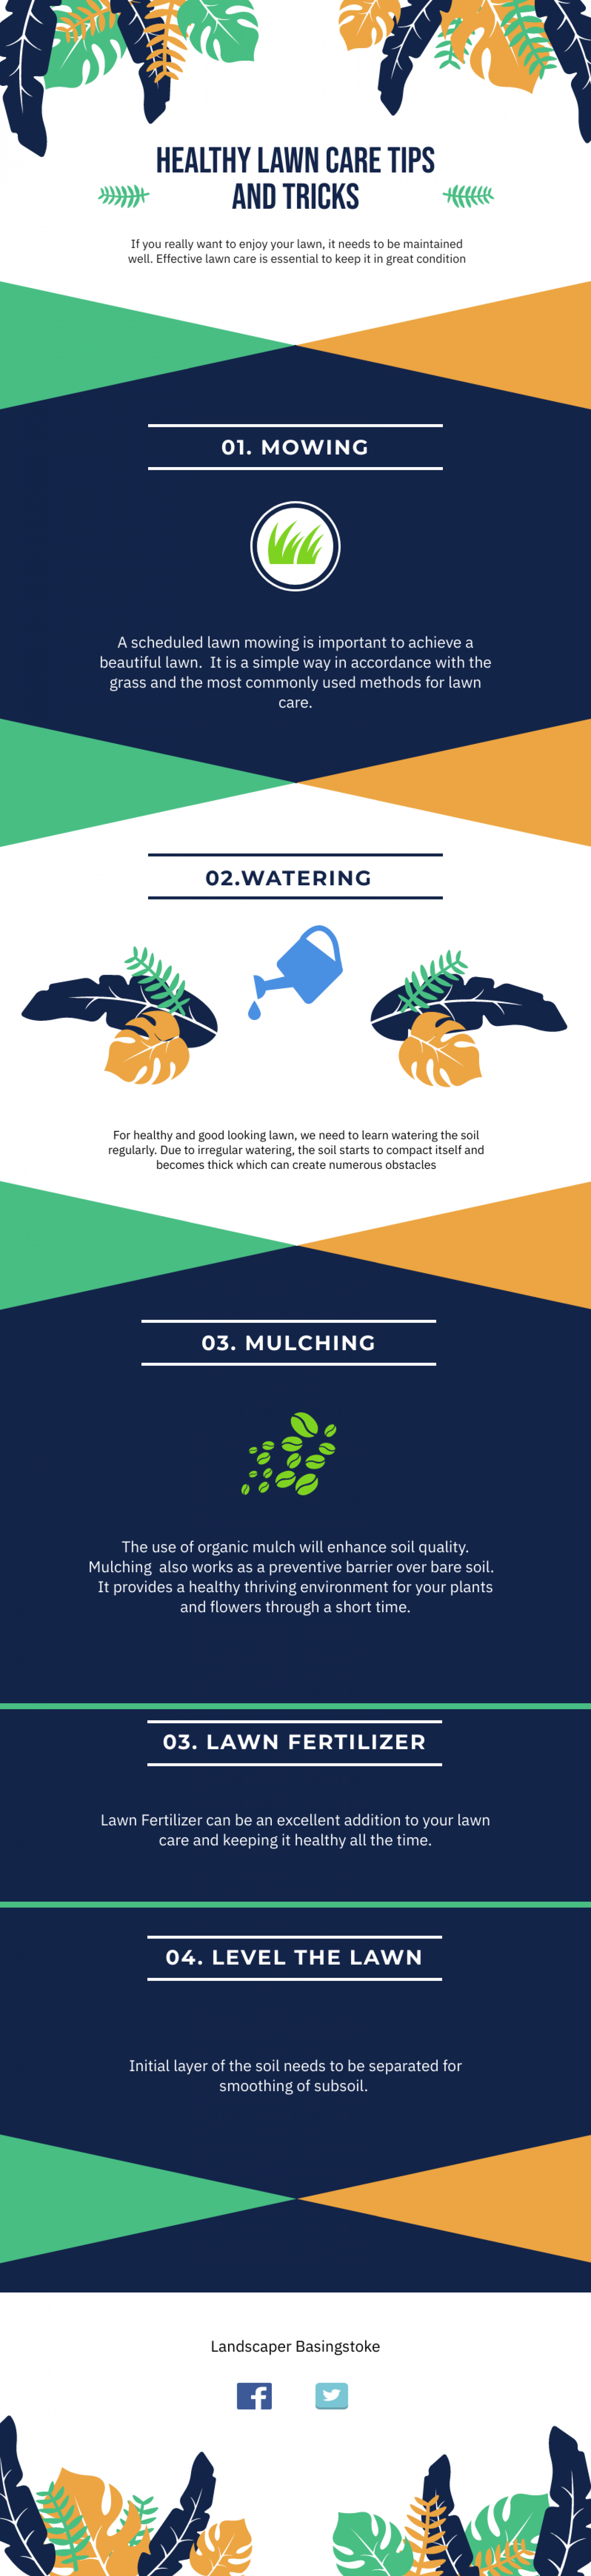 Healthy Lawn Care Tips and Tricks Infographic